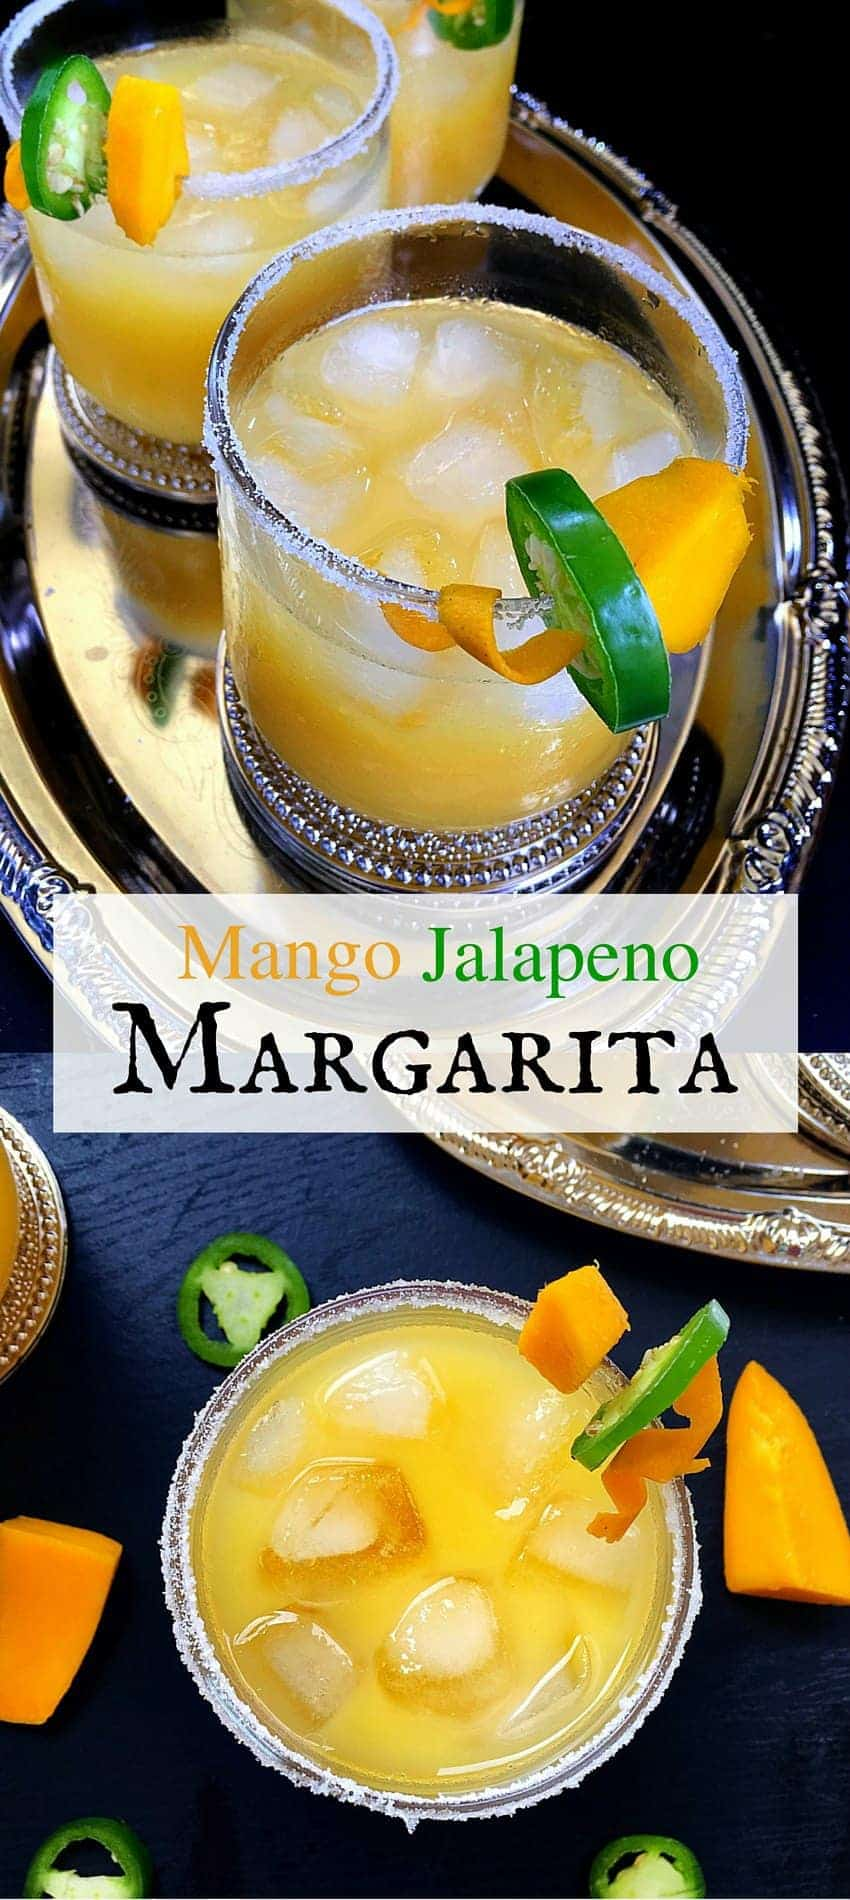 Mango Jalapeno Margarita (3 Mins Drink) #mango #margarita #drinks #cincodemayo #mothersday #tequila